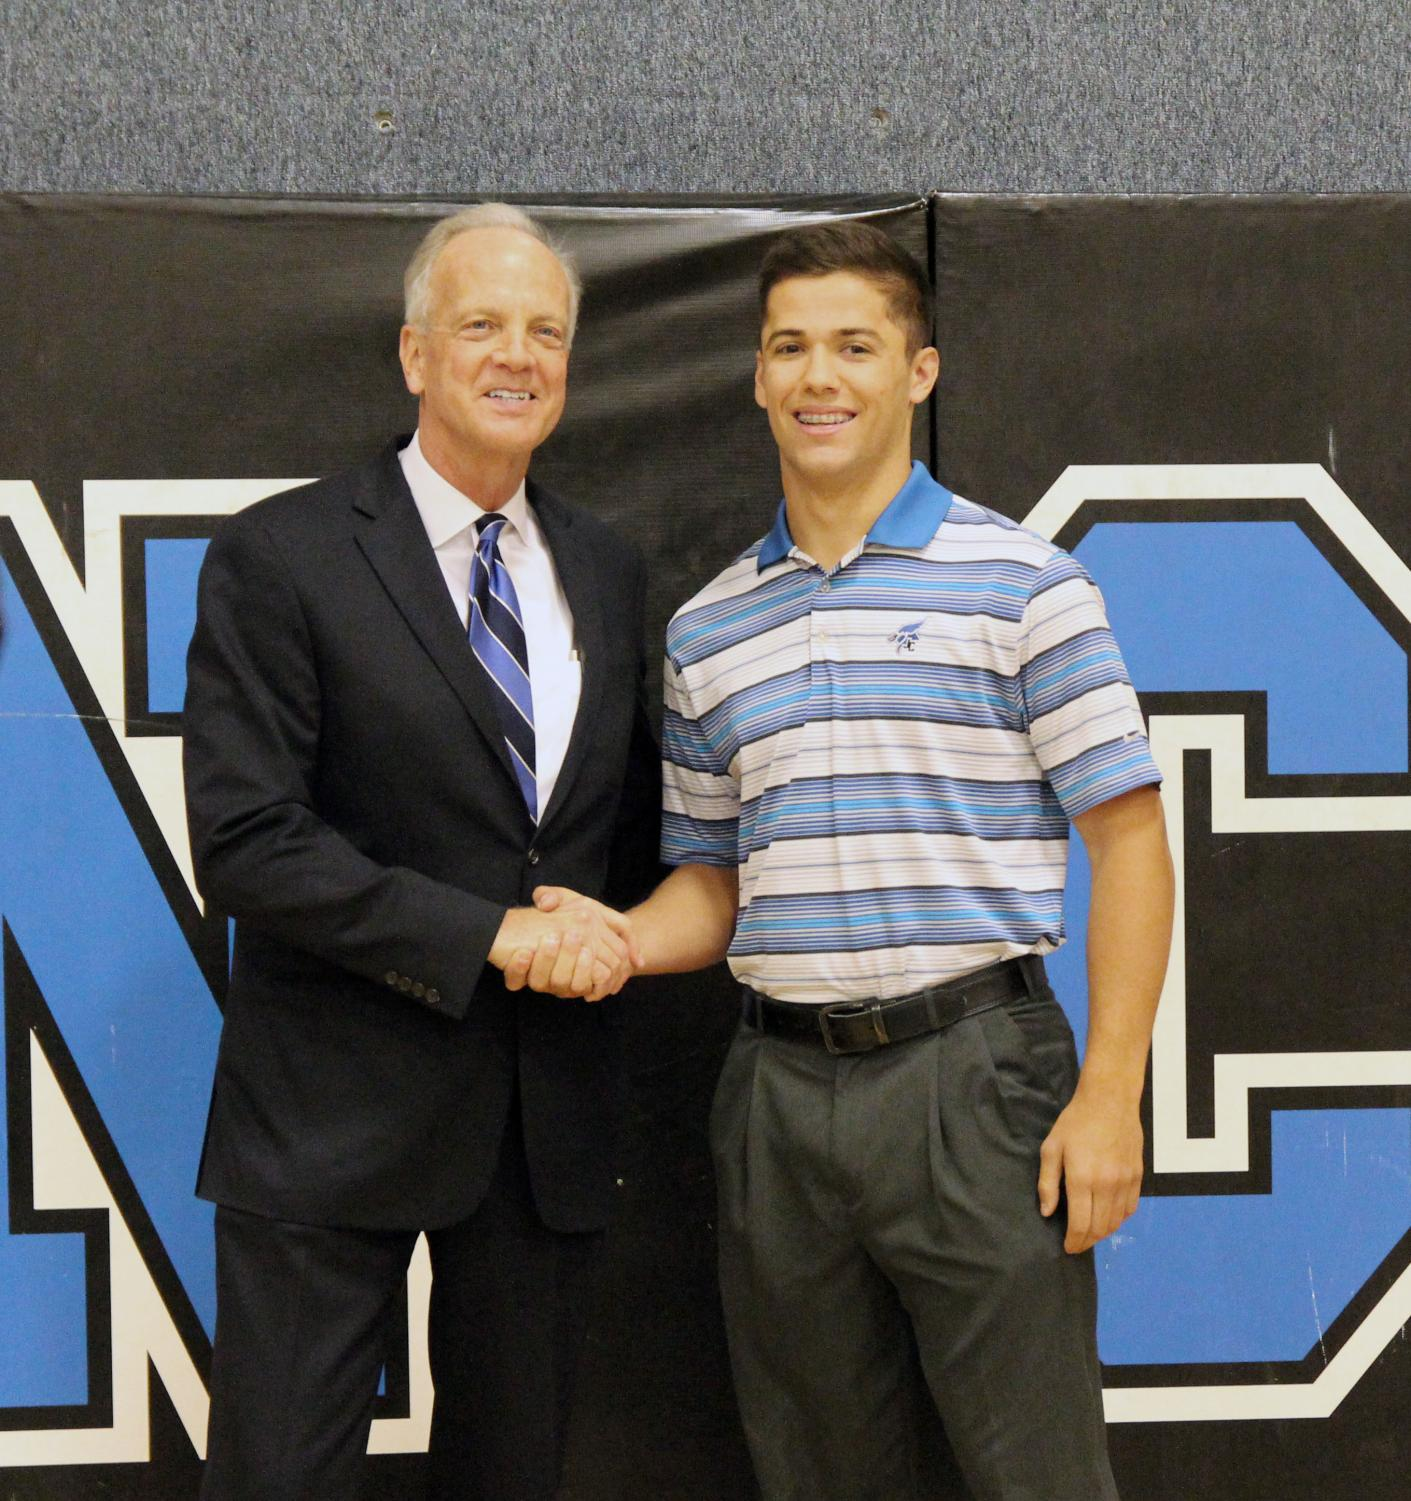 Junction City High School Senior Corbin Sanner receives Senator Jerry Moran's nomination to West Point.